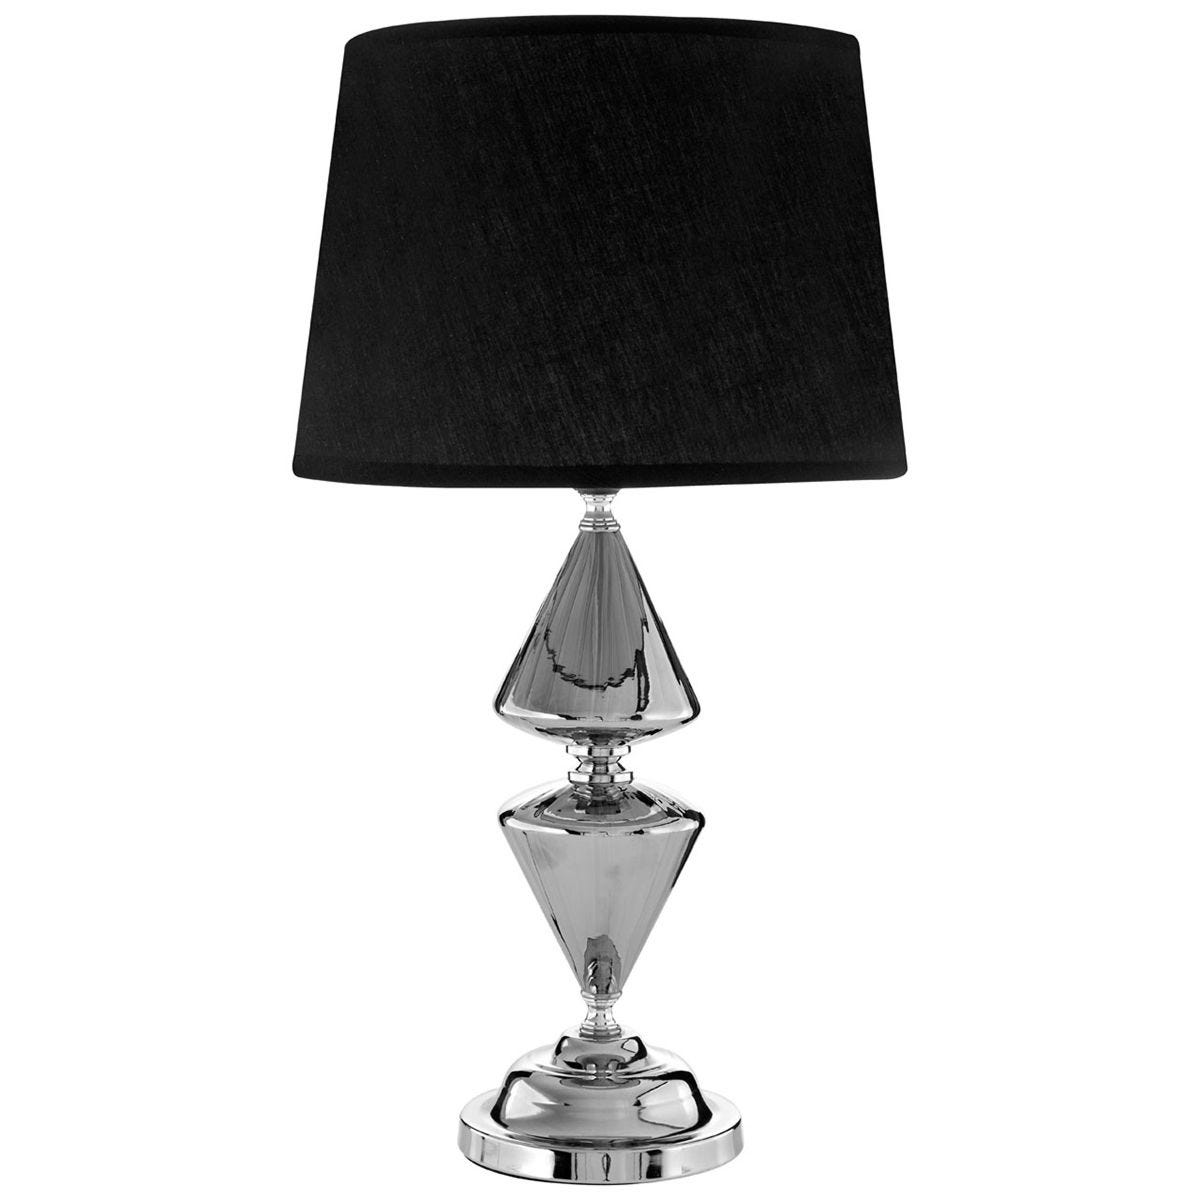 Premier Housewares Honor Glass & Metal Silver Table Lamp (52cm) with Black Shade